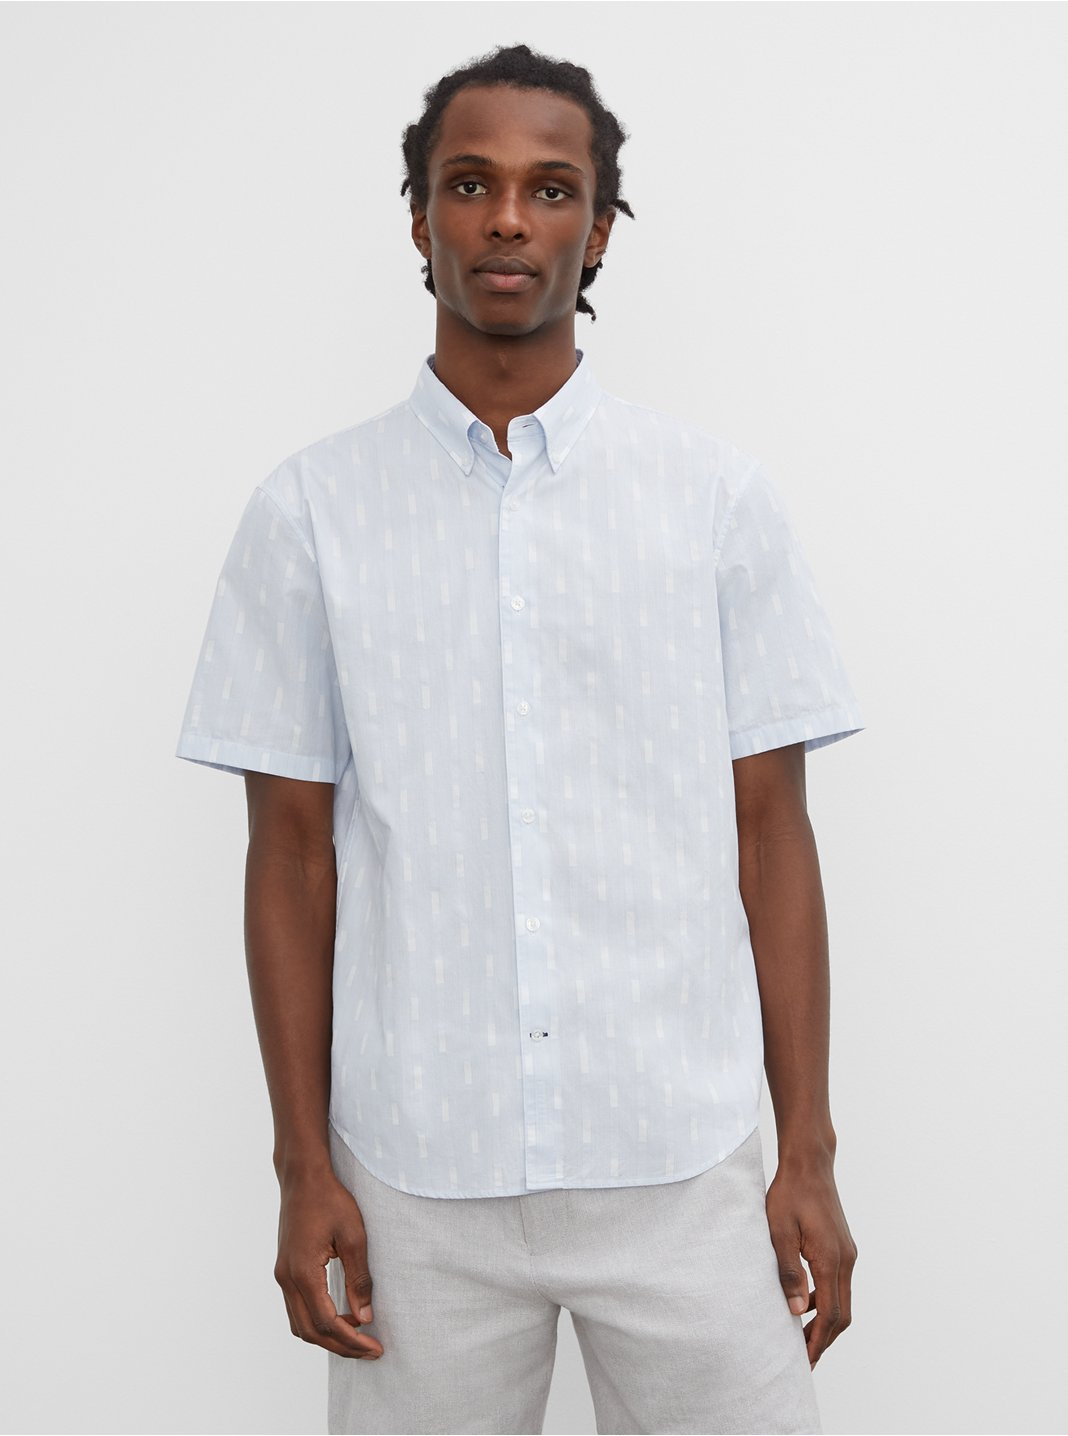 Short Sleeve Jacquard Shirt